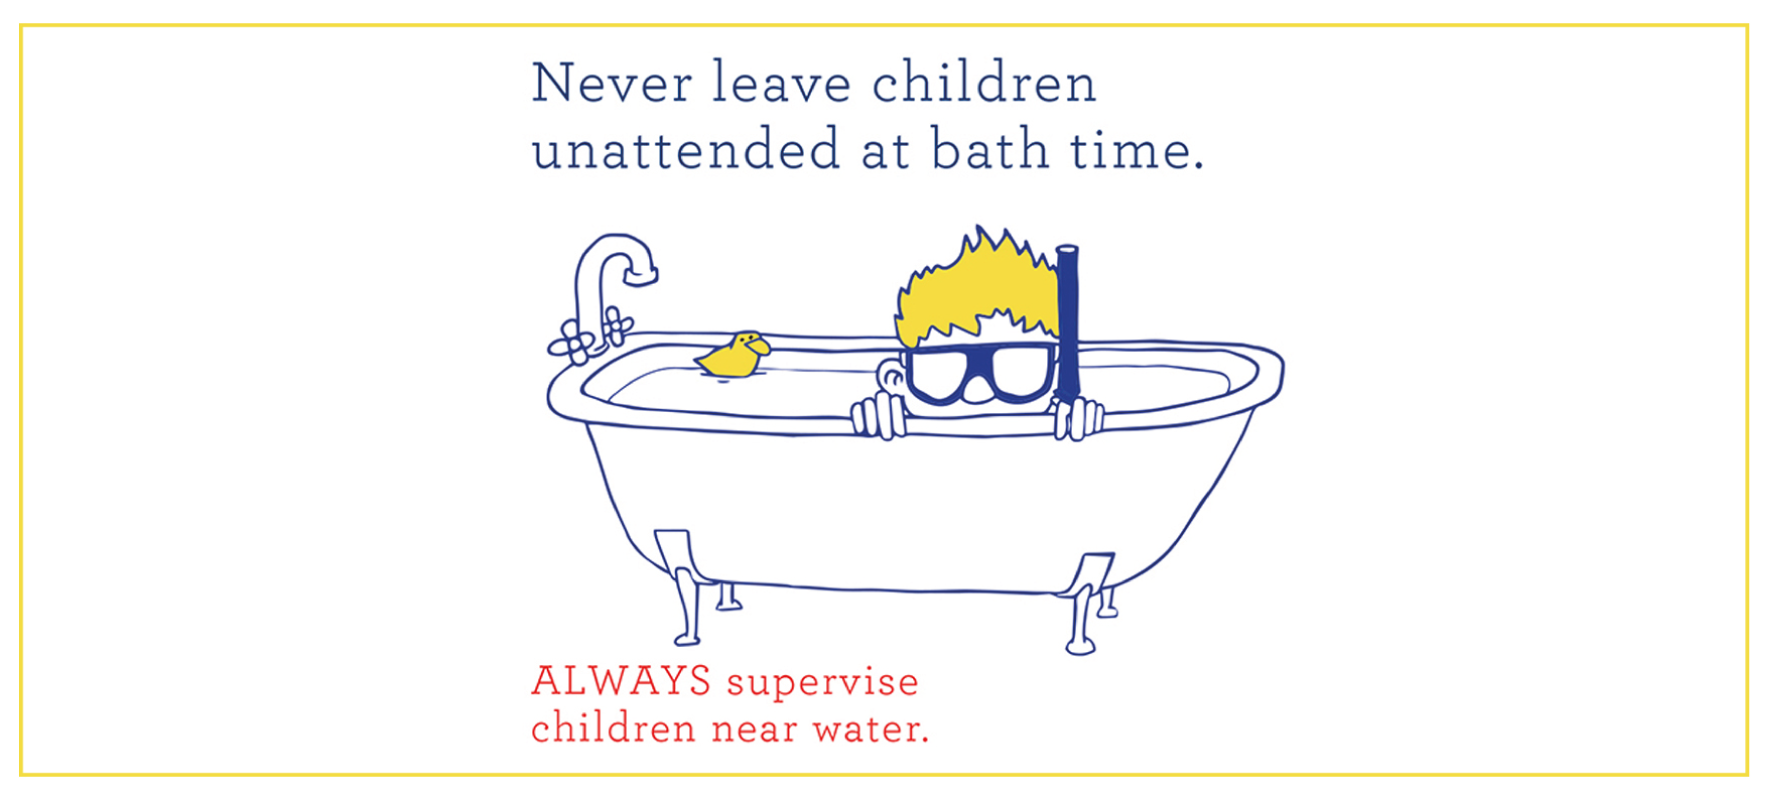 Drowning prevention charity supporter warns parents for its national Spring Clean campaign